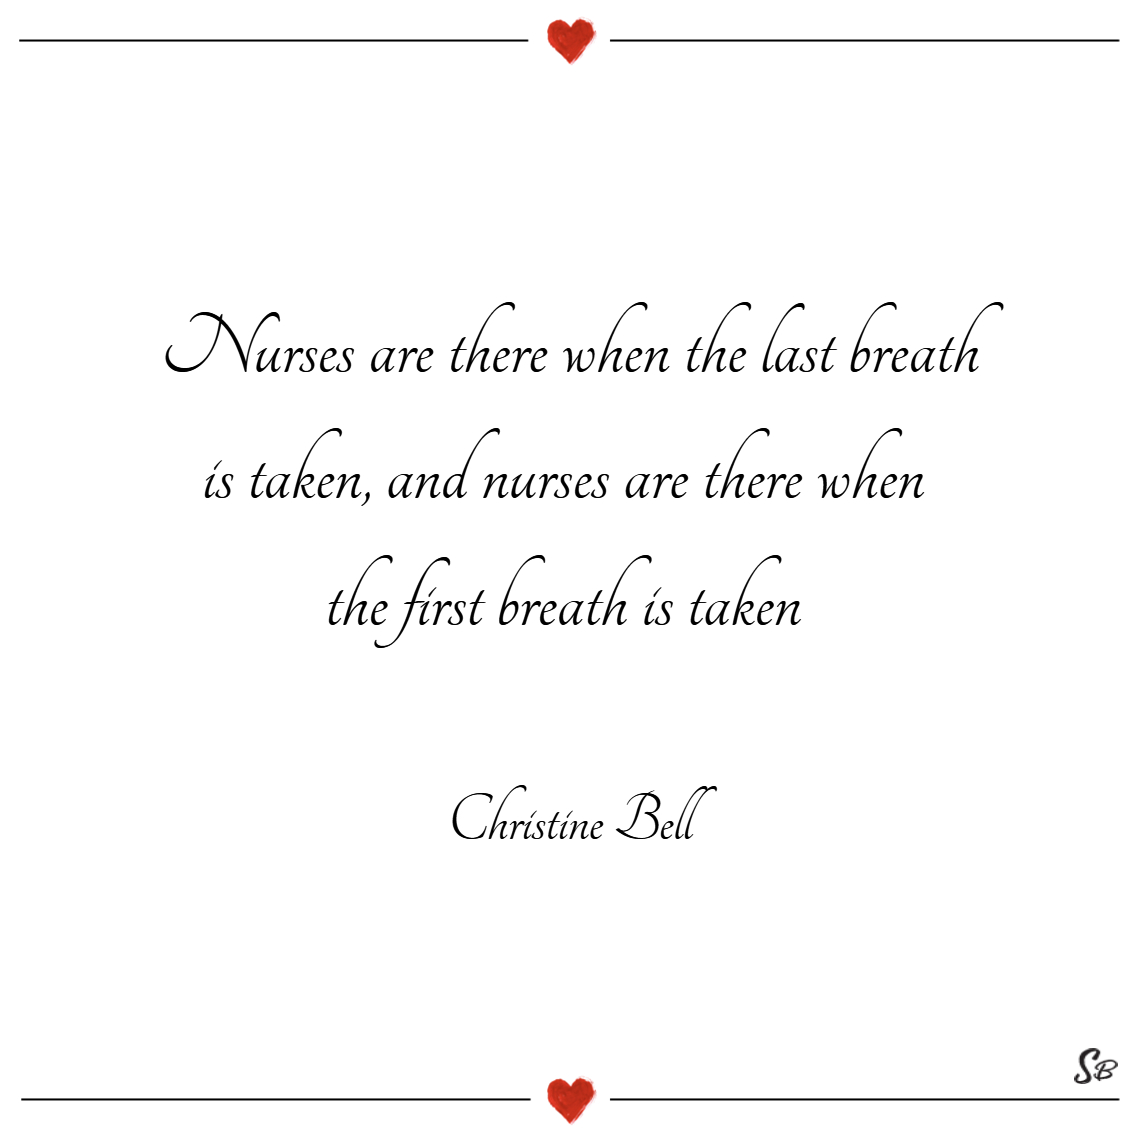 Nurses are there when the last breath is taken, an